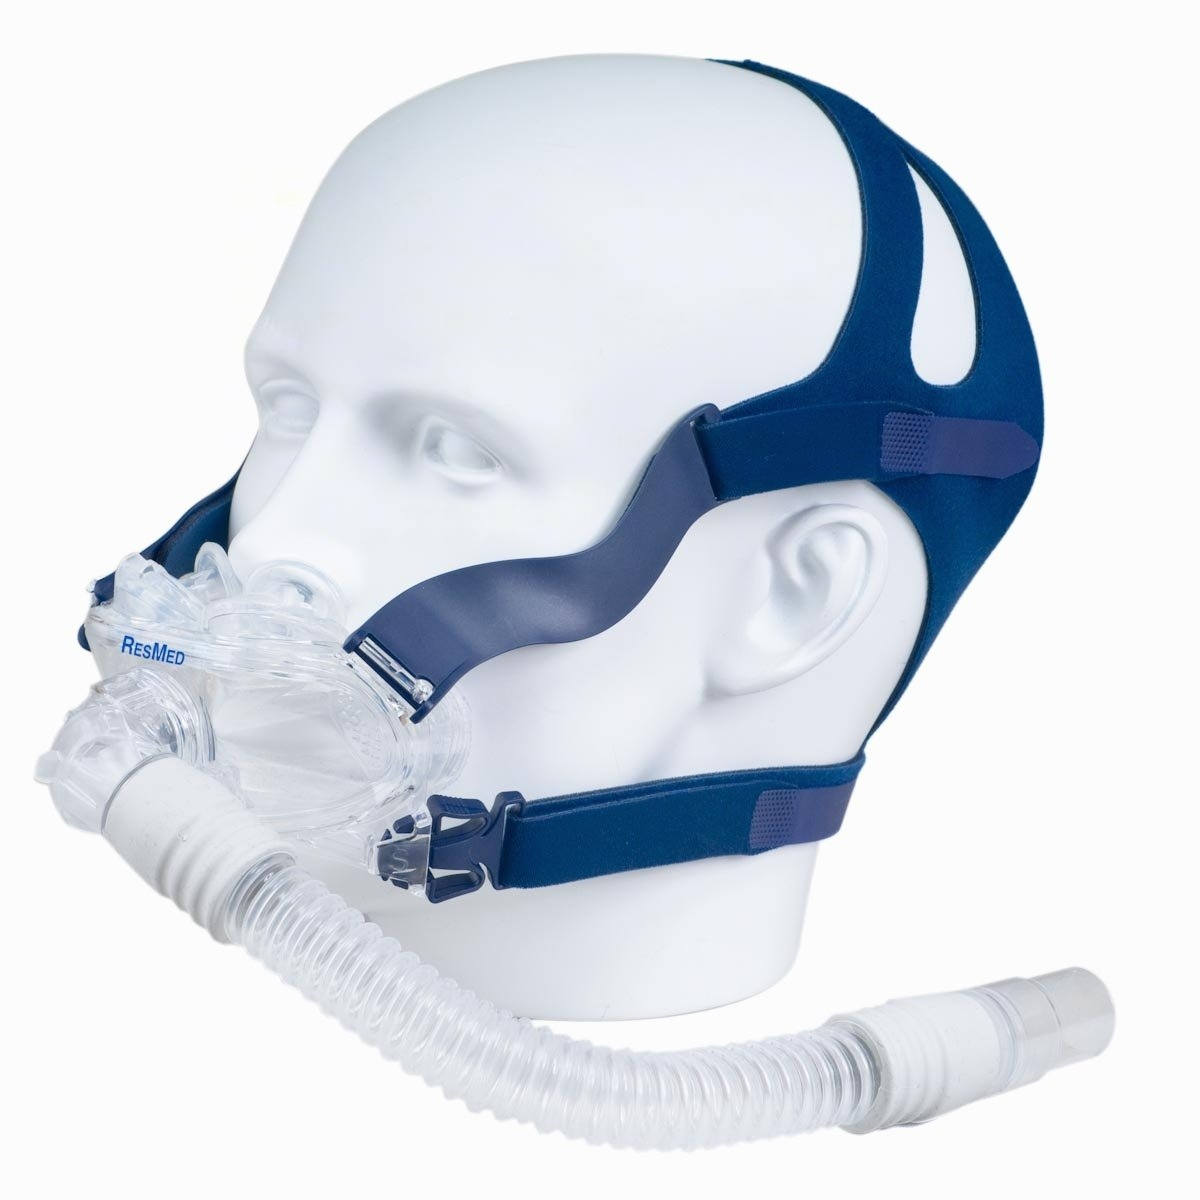 Resmed Mirage Liberty Full Face Cpap Mask